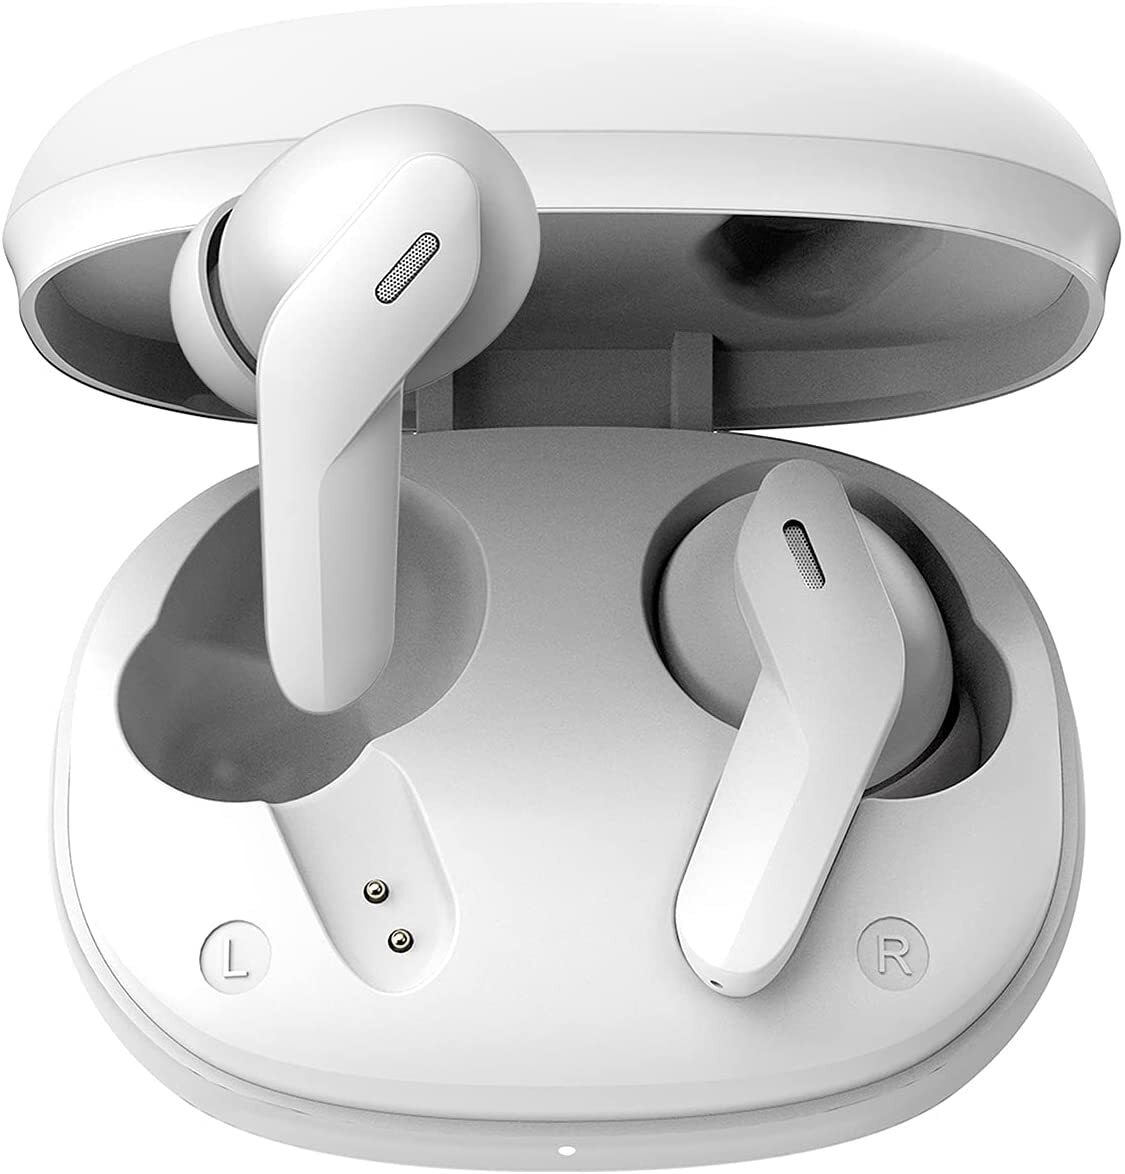 Bluetooth headset Wireless Earbuds Mezone B40  True Wireless Headphones Bluetooth Earphones Deep Bass Noise Cancelling